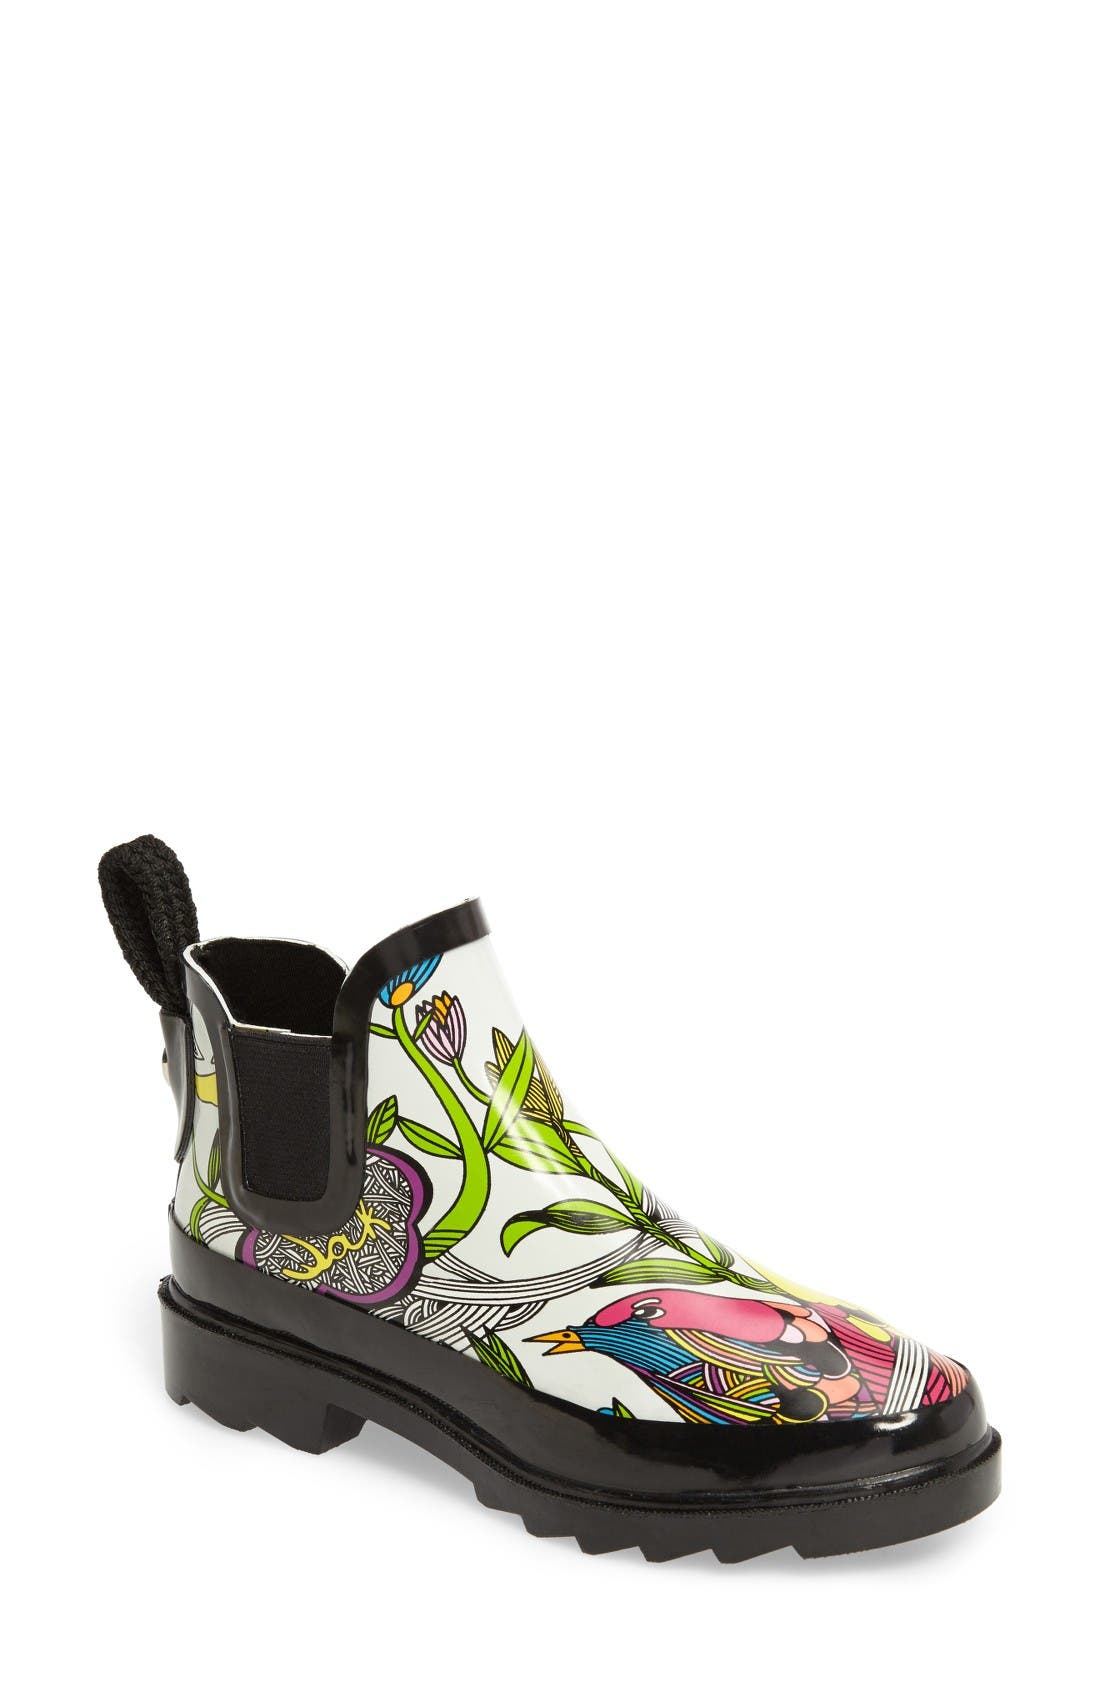 SAKROOTS 'Rhyme' Waterproof Rain Boot